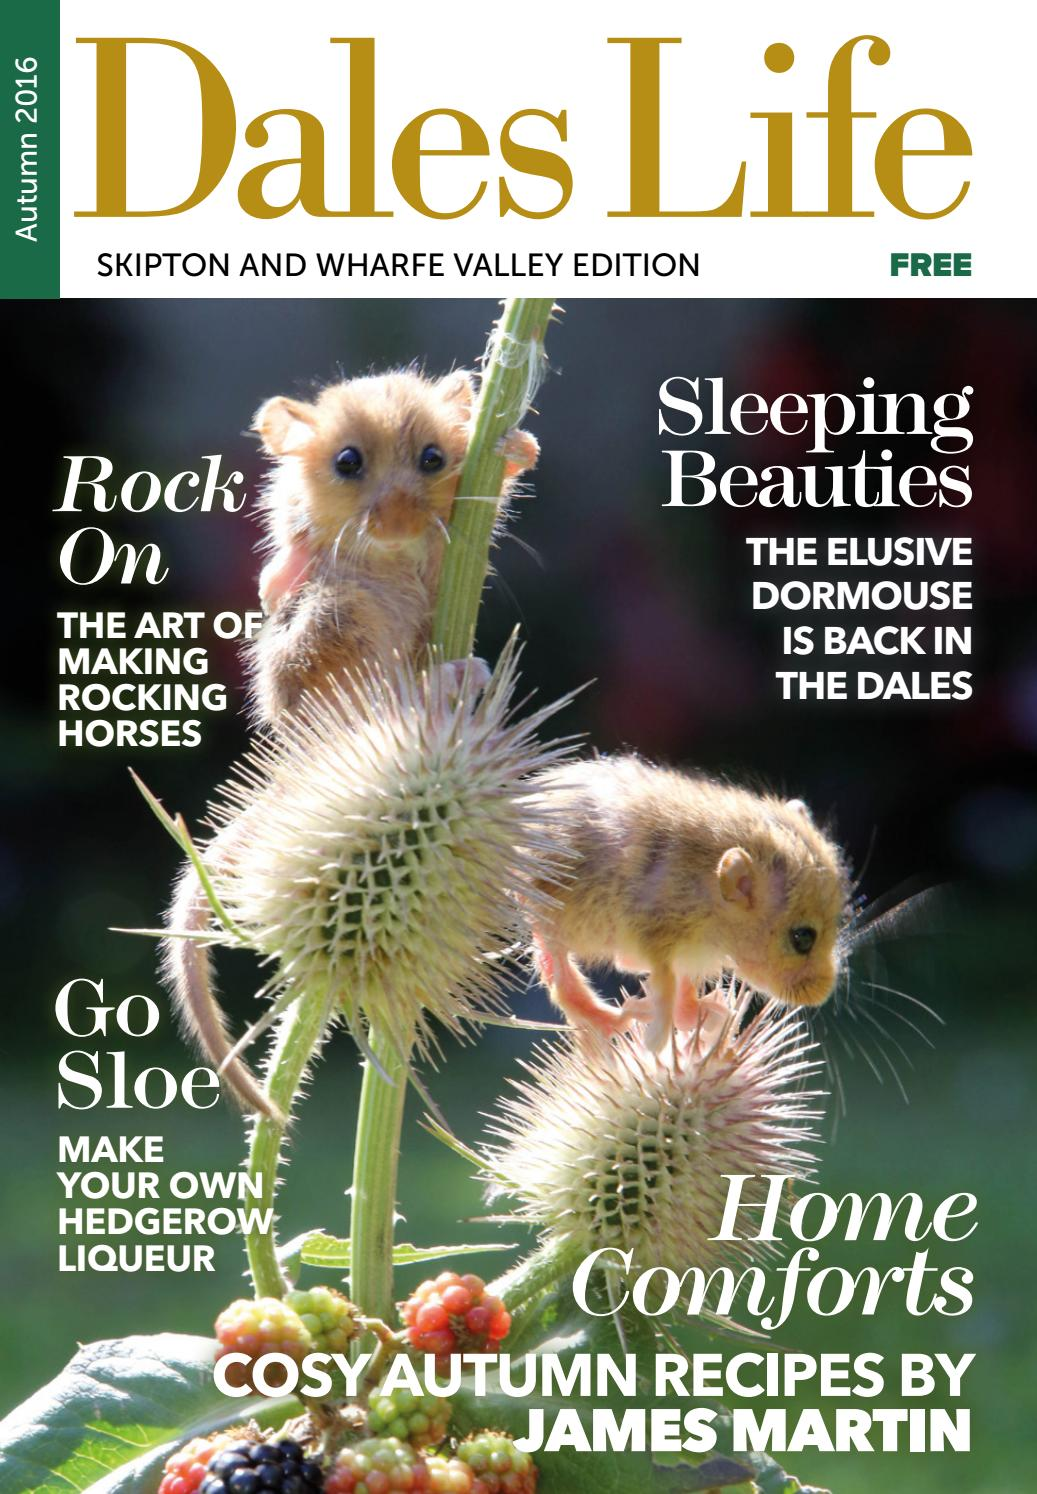 Dales Life 3 2016 Autumn South Dales Edition by Dales Life - issuu d4af1907f